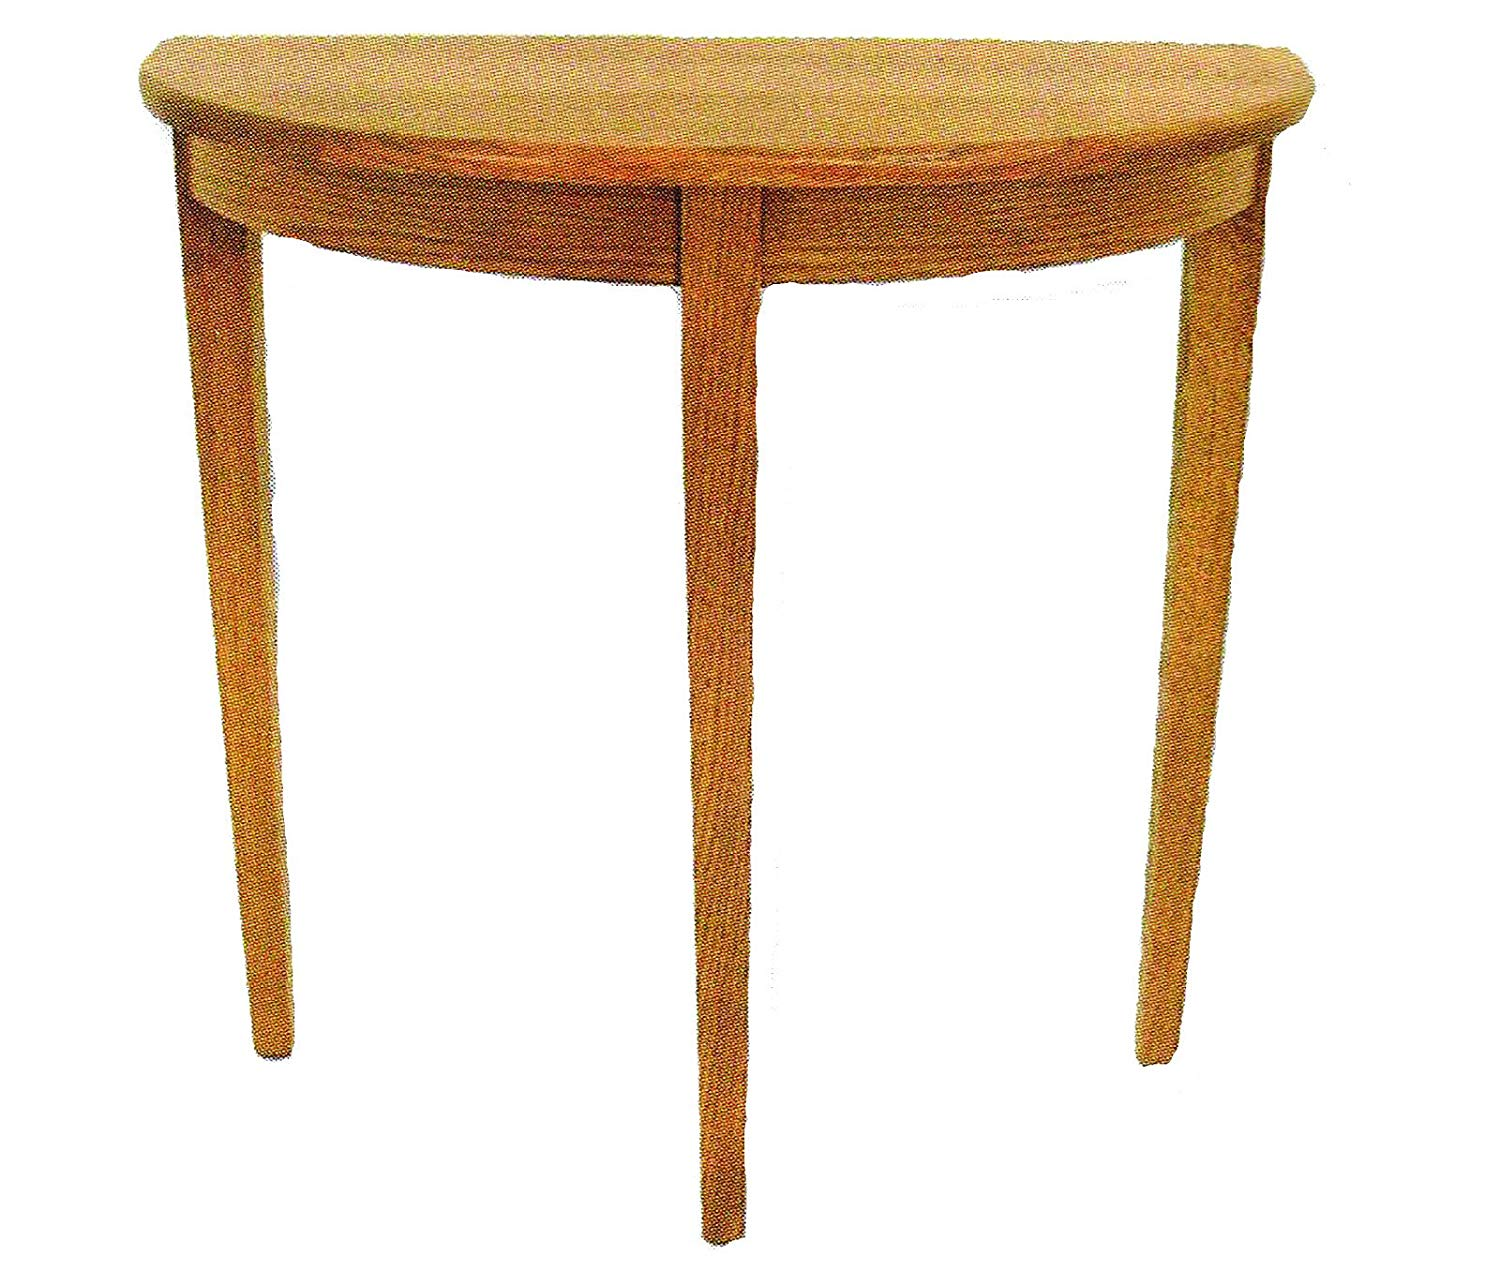 oak hall foyer half round accent table amish made usa kitchen dining furniture pieces heaters verizon tablet extra tall lamps telephone and seat placemats napkins aluminum patio